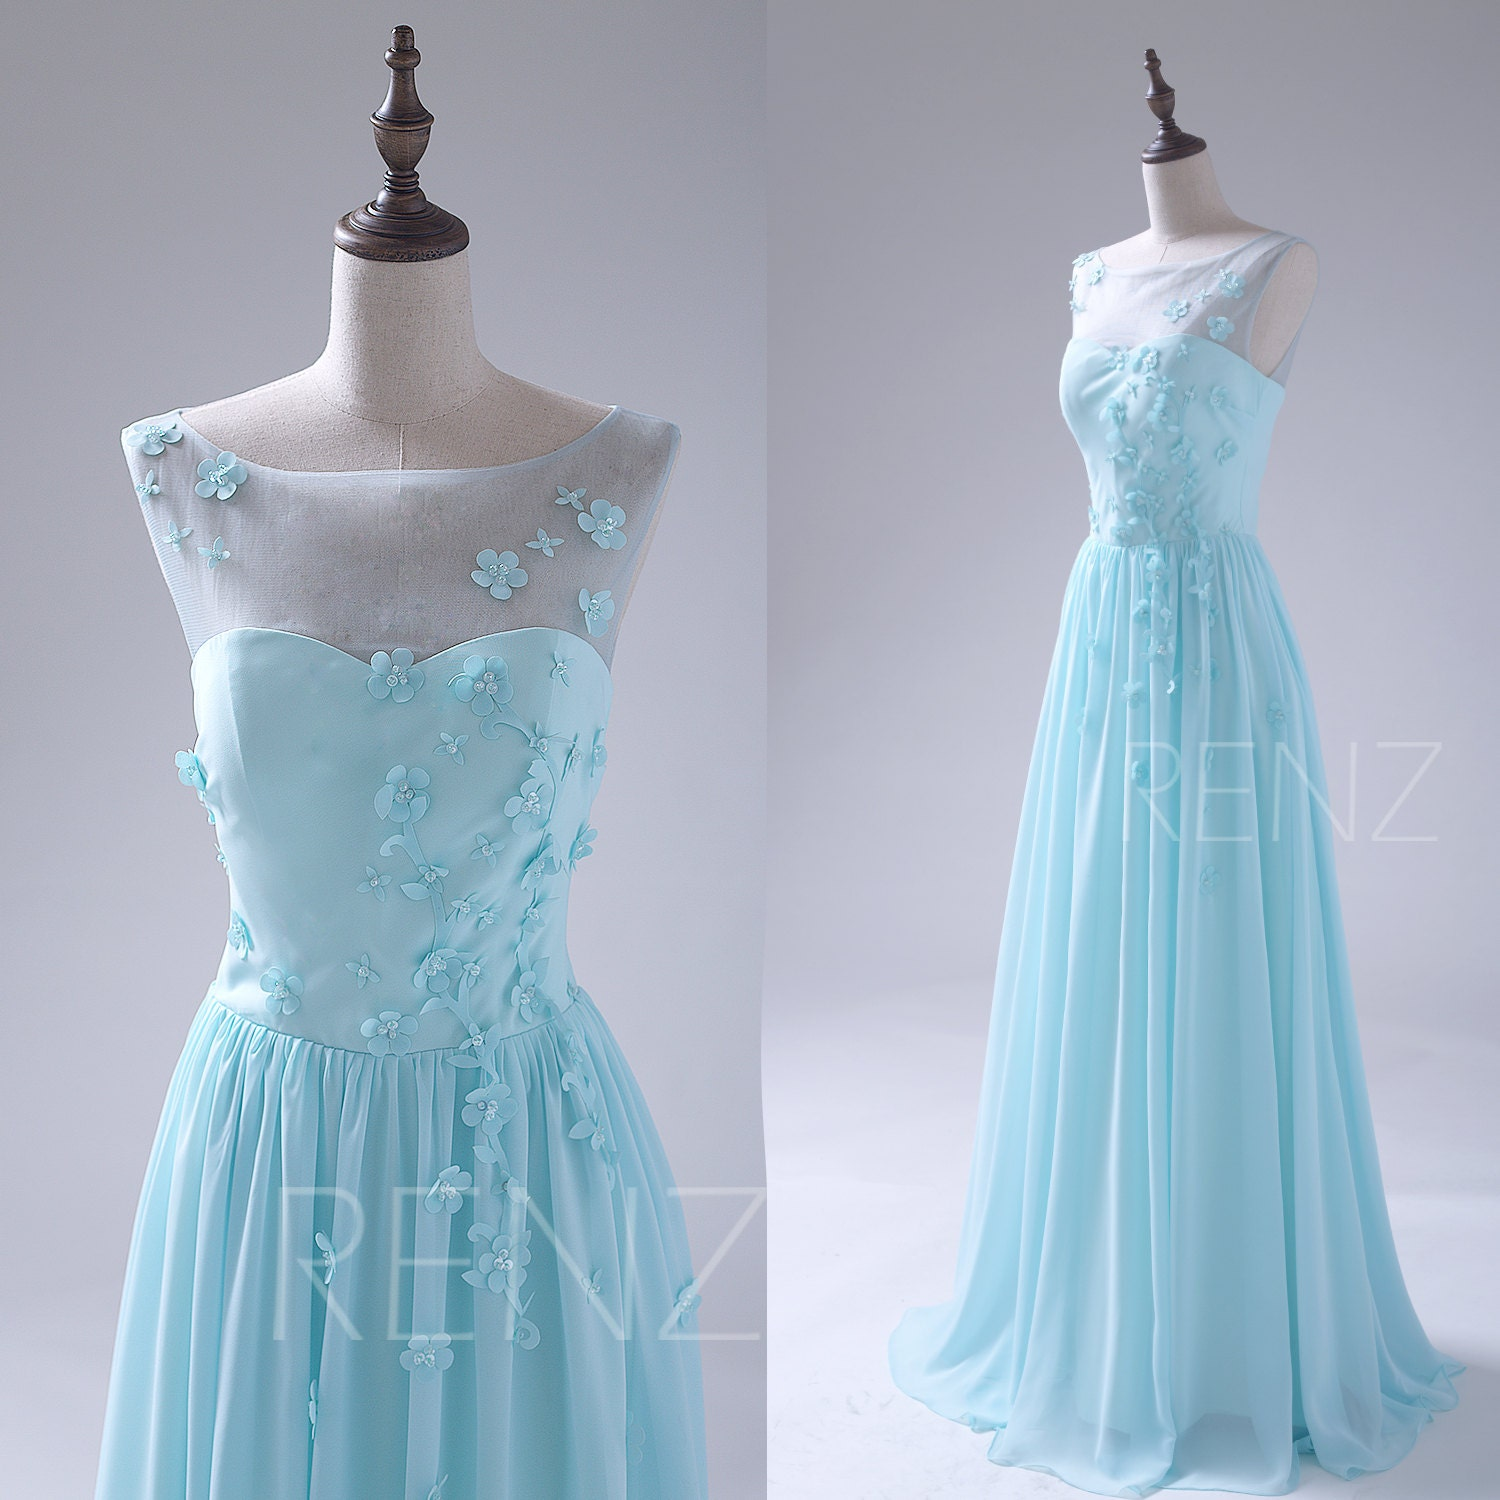 Aqua bridesmaid dress bateau neck wedding dress illusion for Light blue dress for wedding